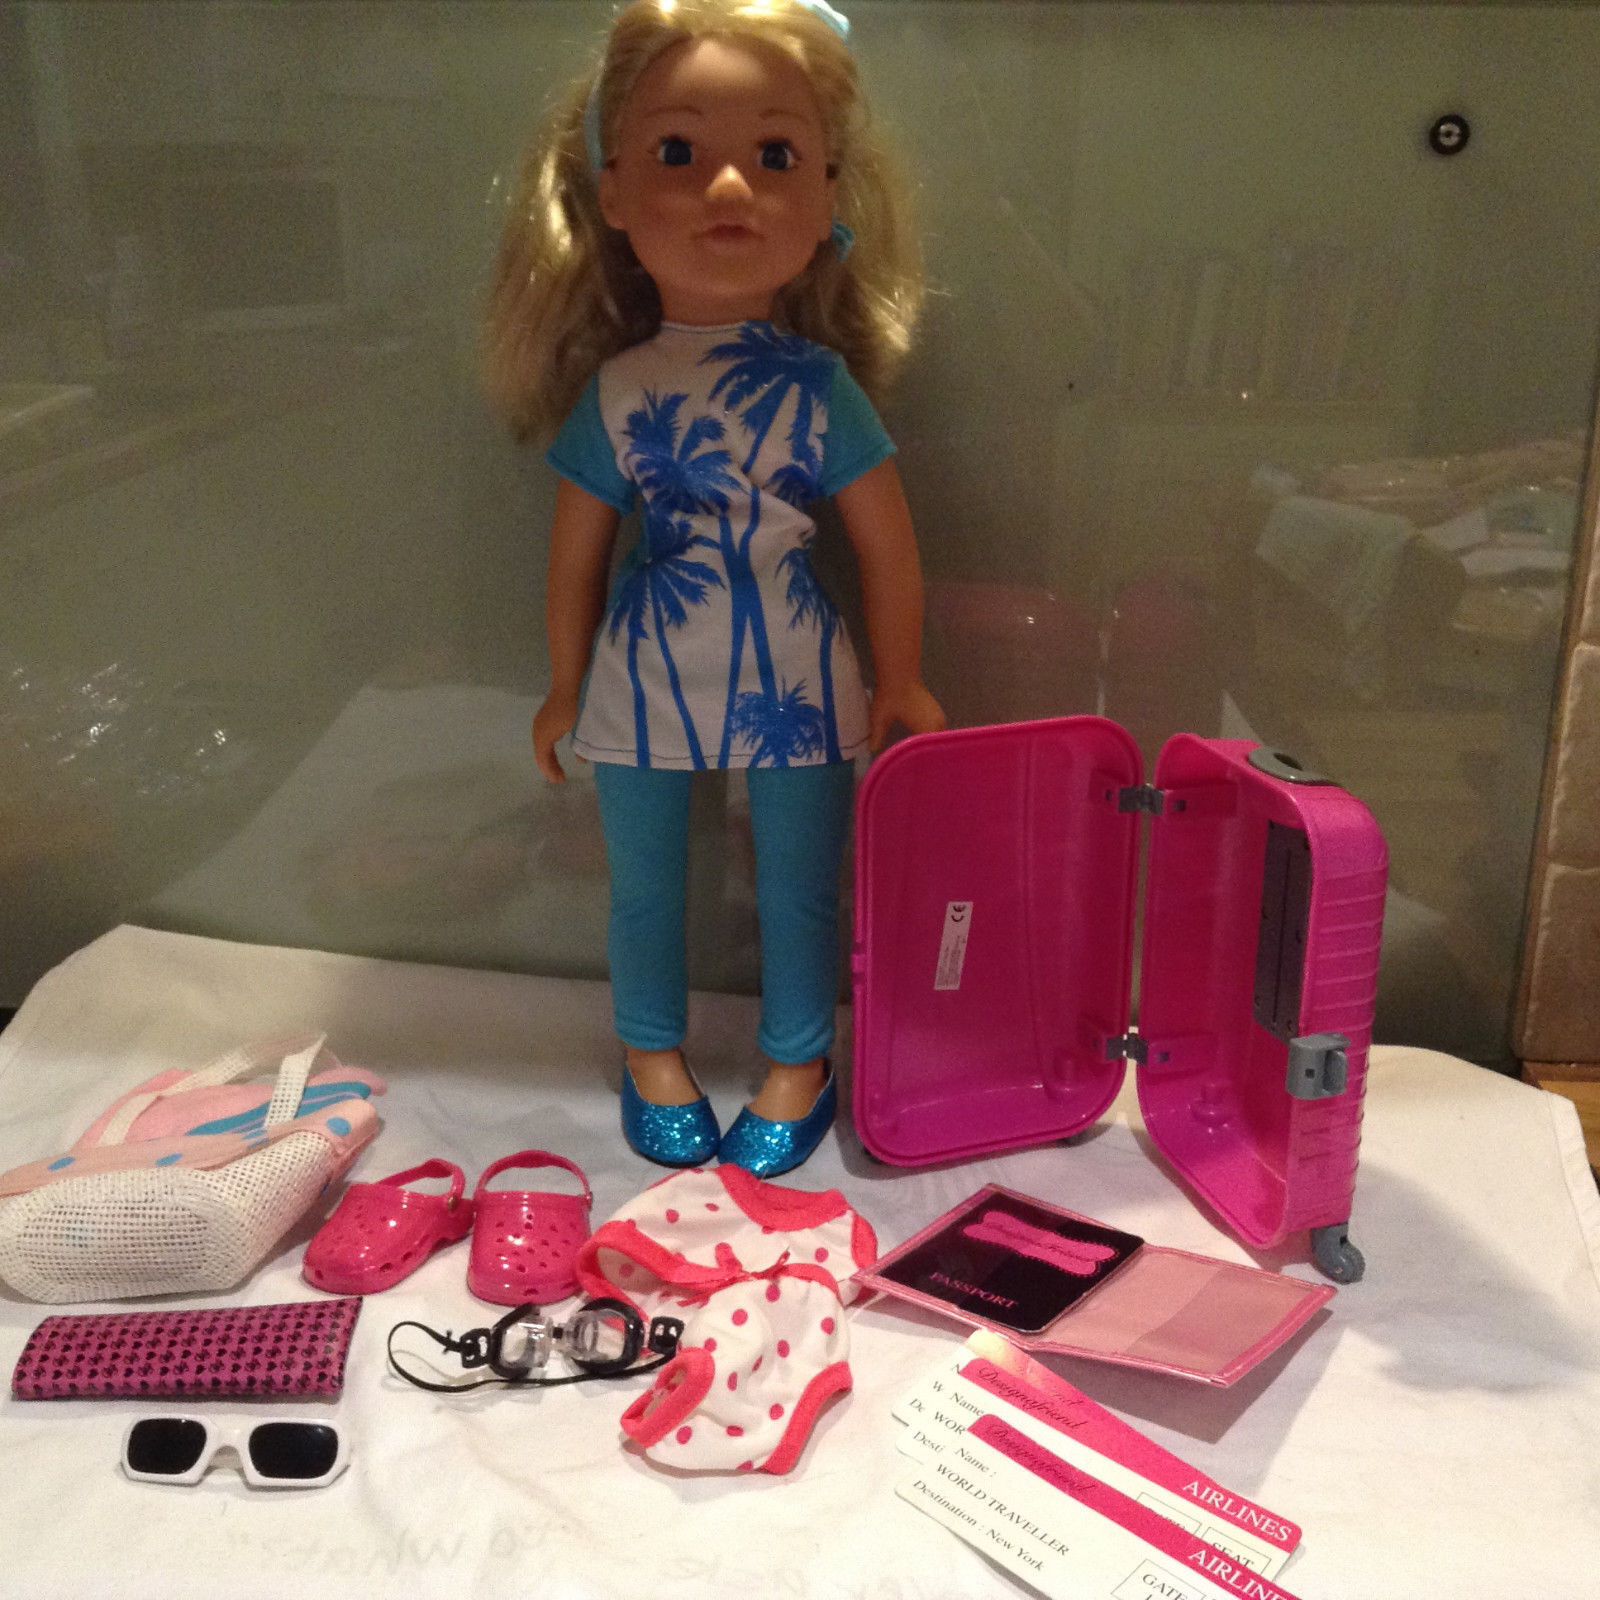 DESIGN A FRIEND SAHARA and SUITCASE  with BEACH SET extra NEW items